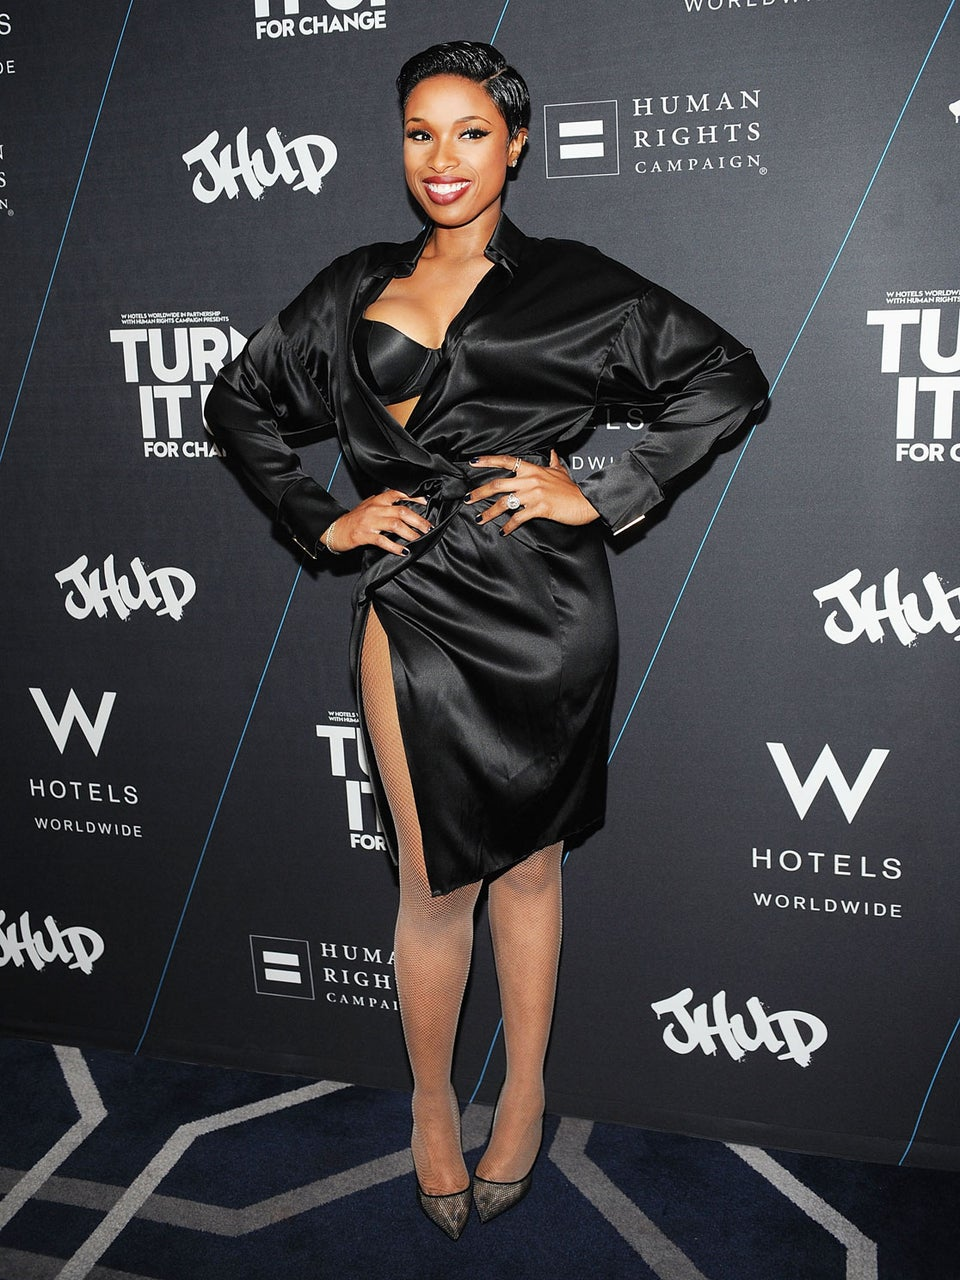 You're Gonna Love Her: Jennifer Hudson To Guest Star on Fox's 'Empire'